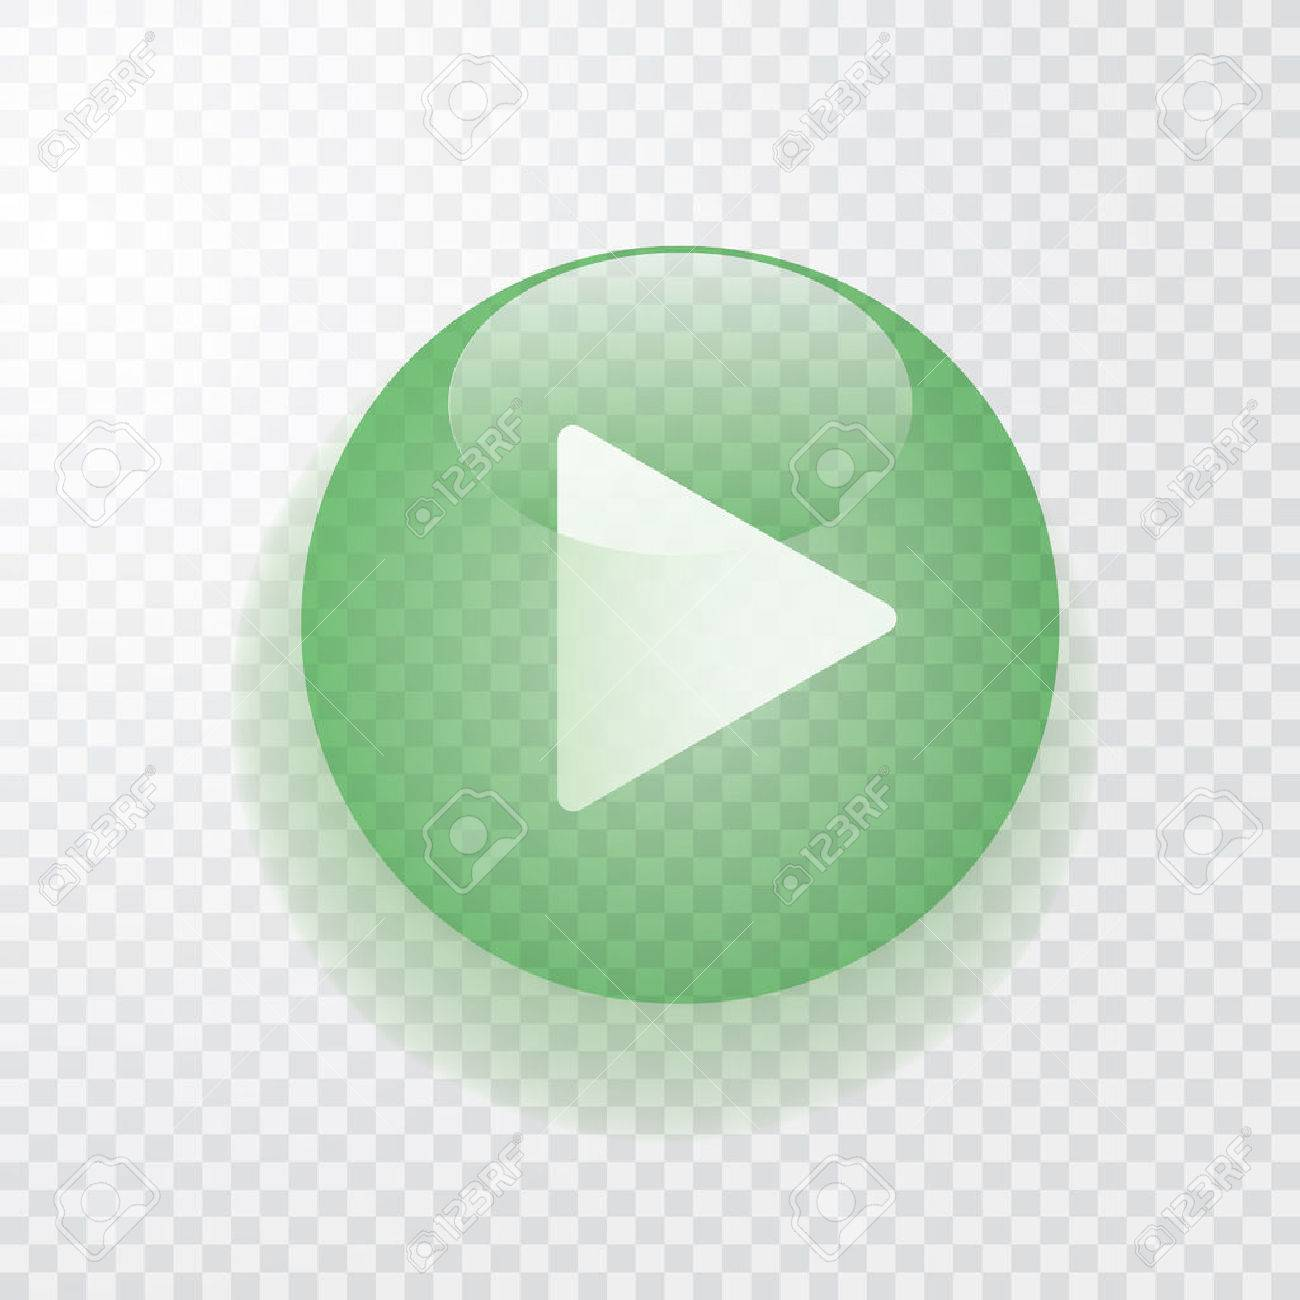 green transparent play button with shadow, icon - 64522016